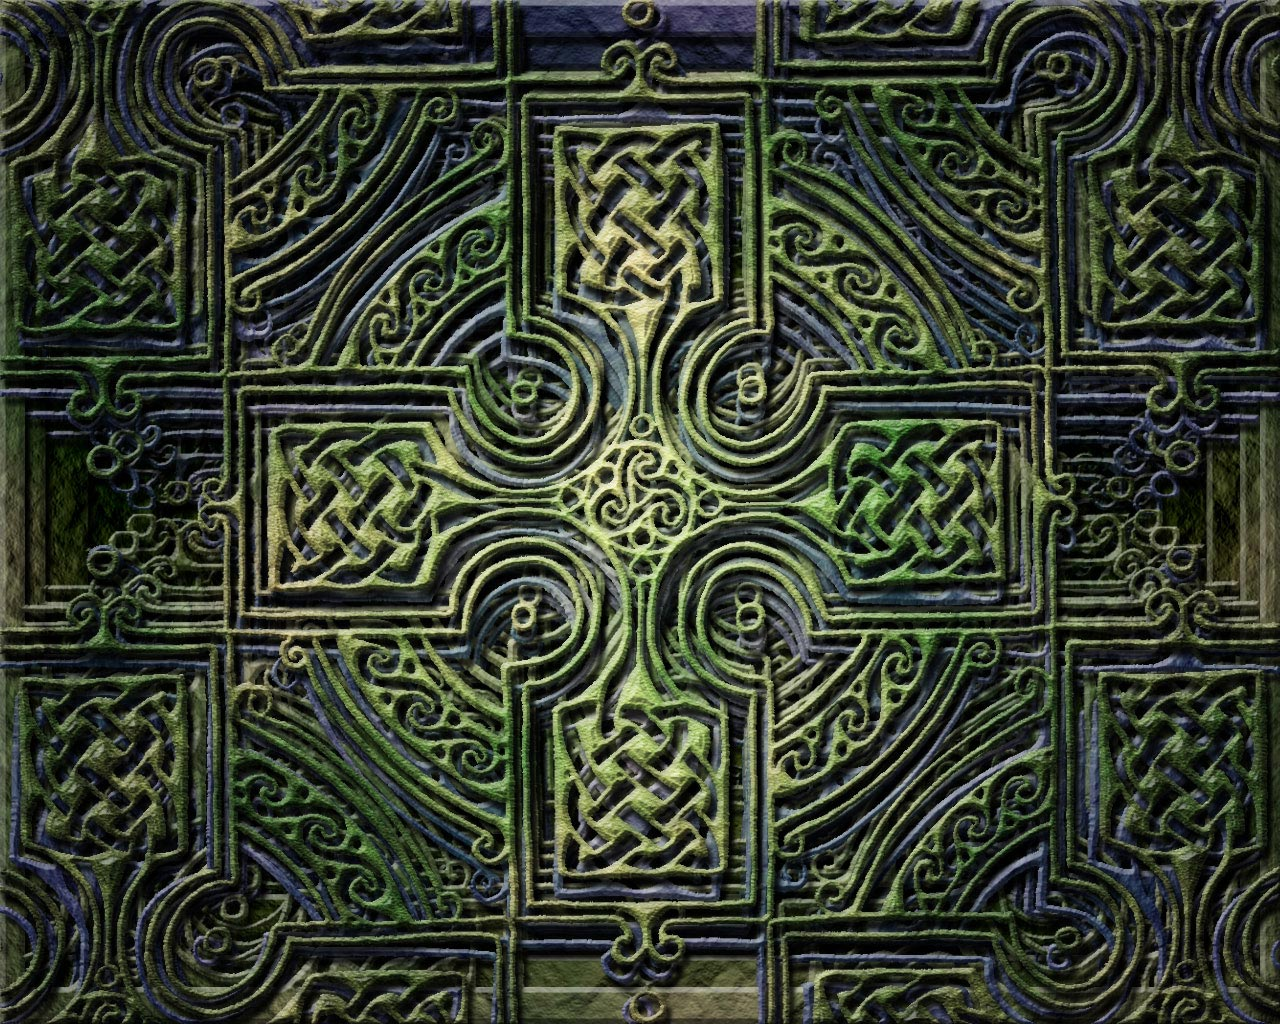 Irish Celtic Cross Wallpaper Images amp Pictures   Becuo 1280x1024